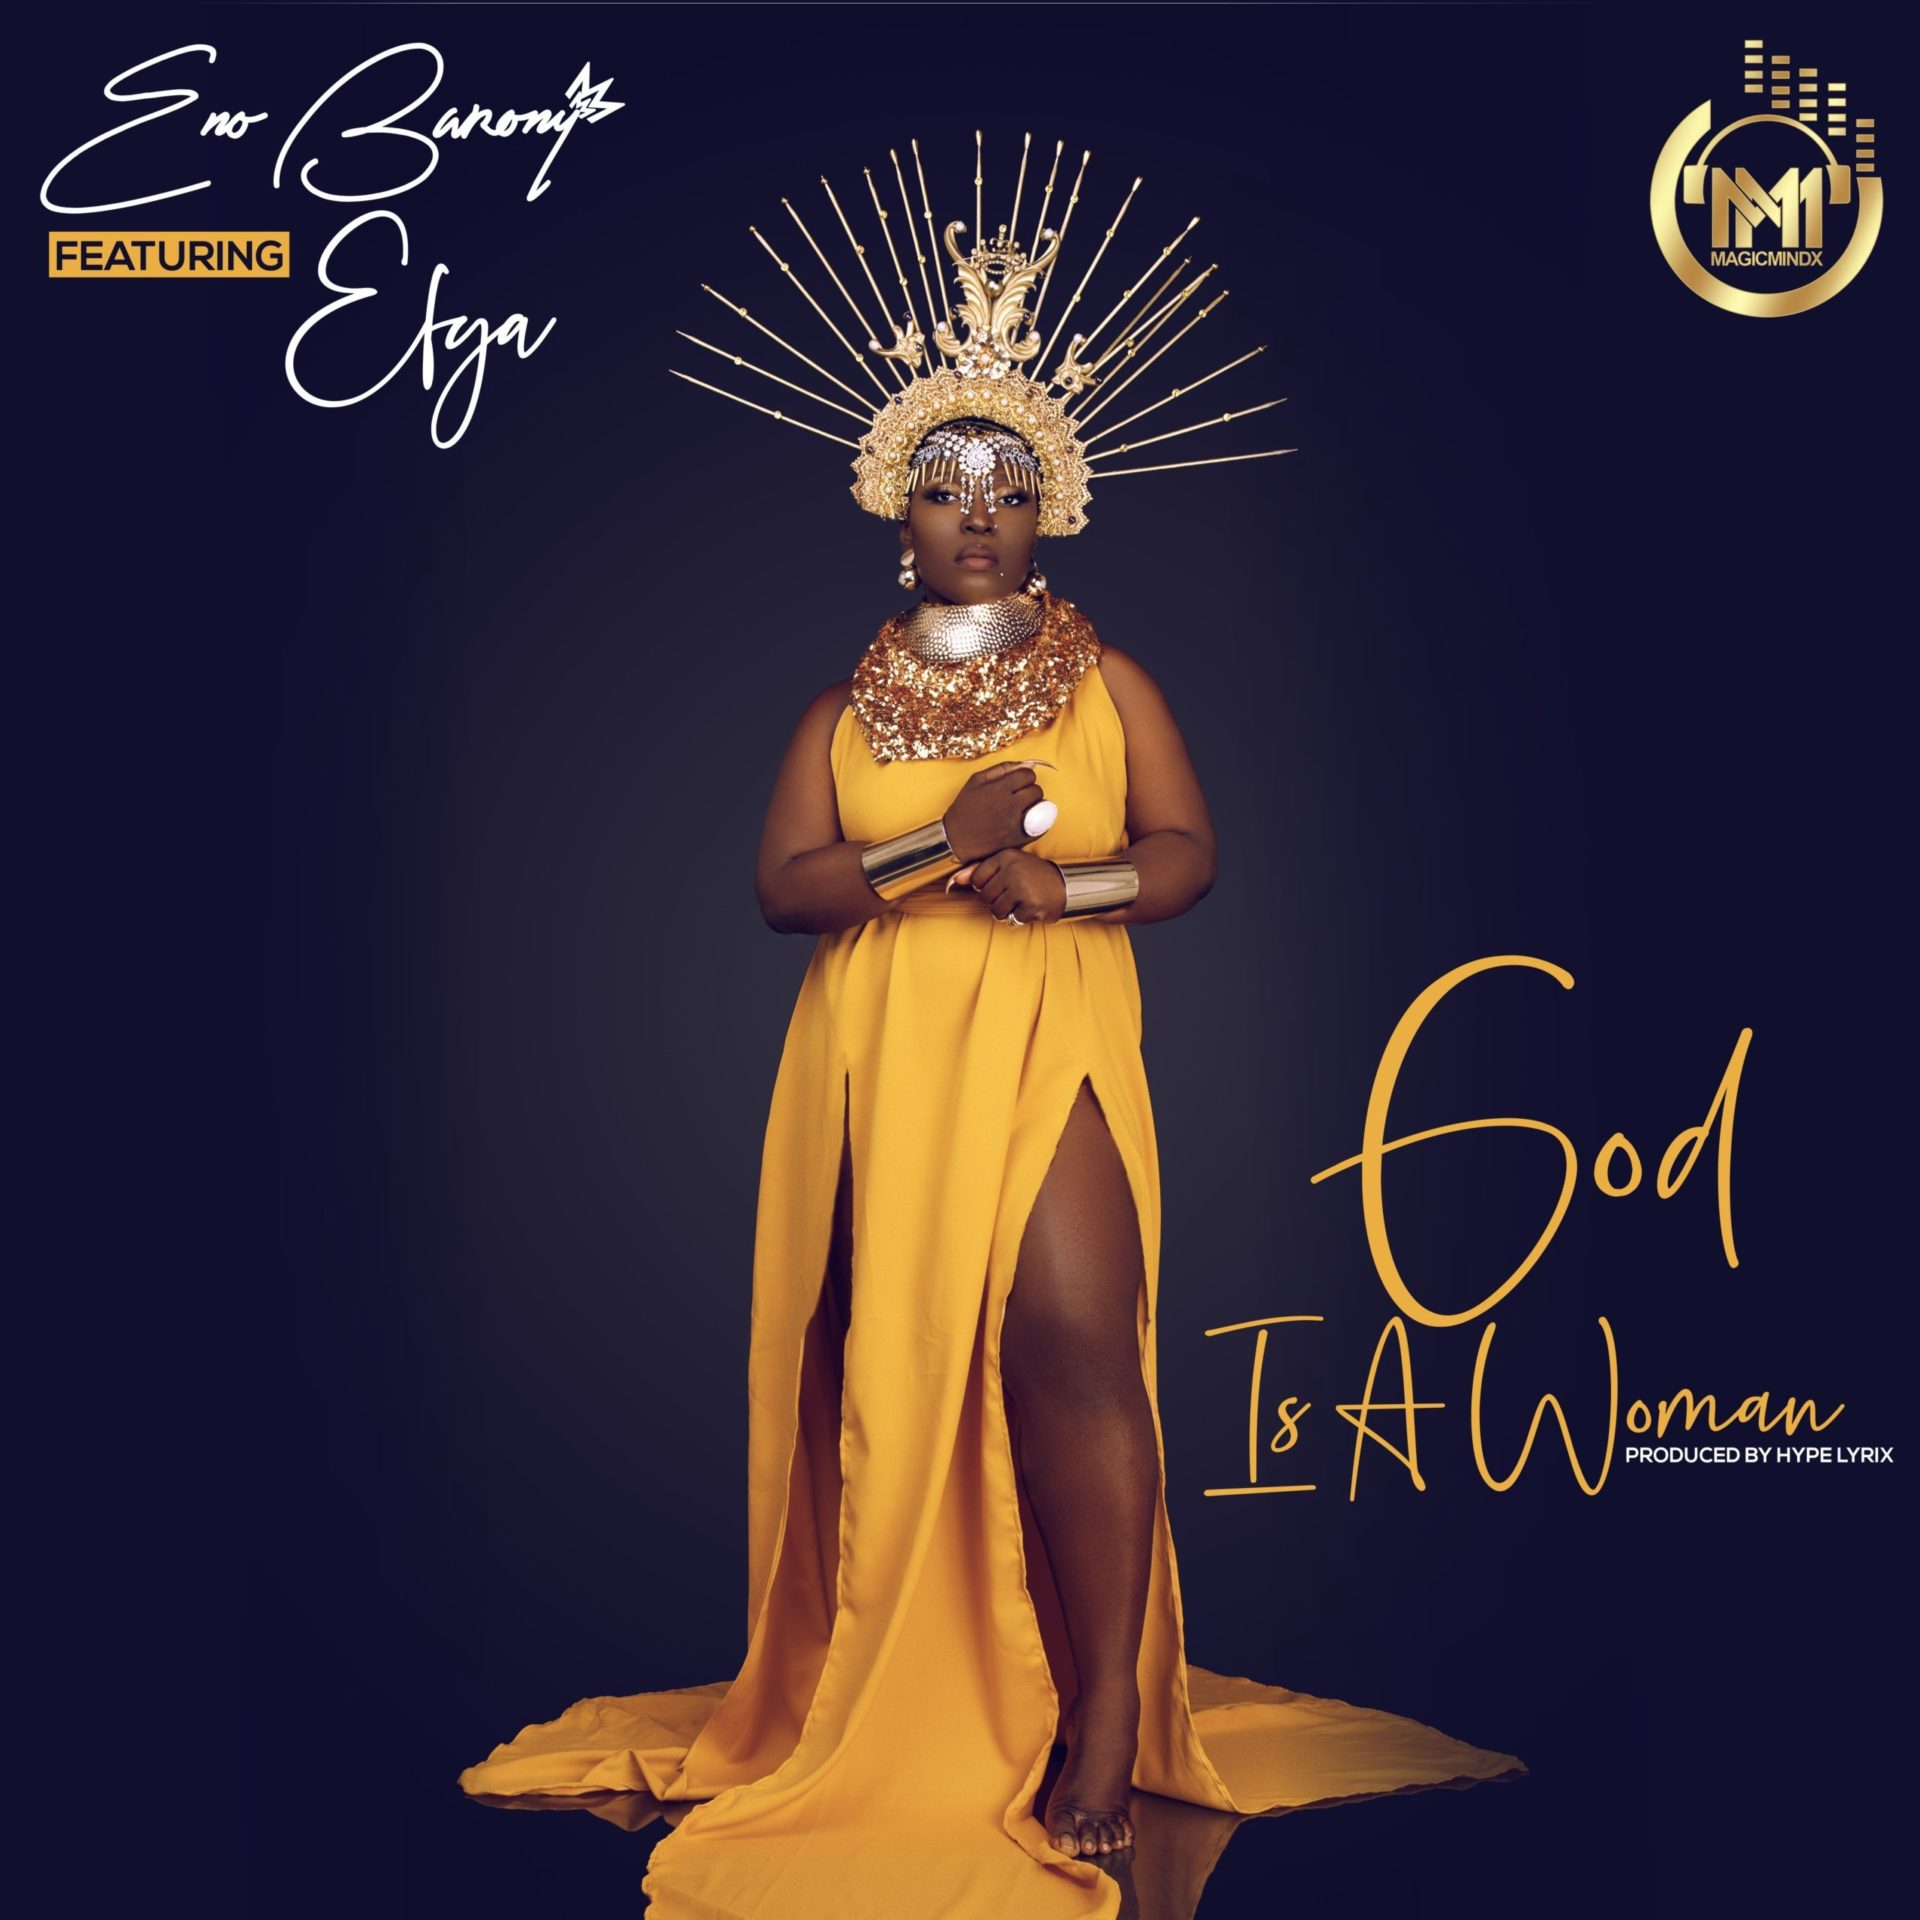 Eno Barony Features Efya On New Song 'God Is A Woman' (Listen)